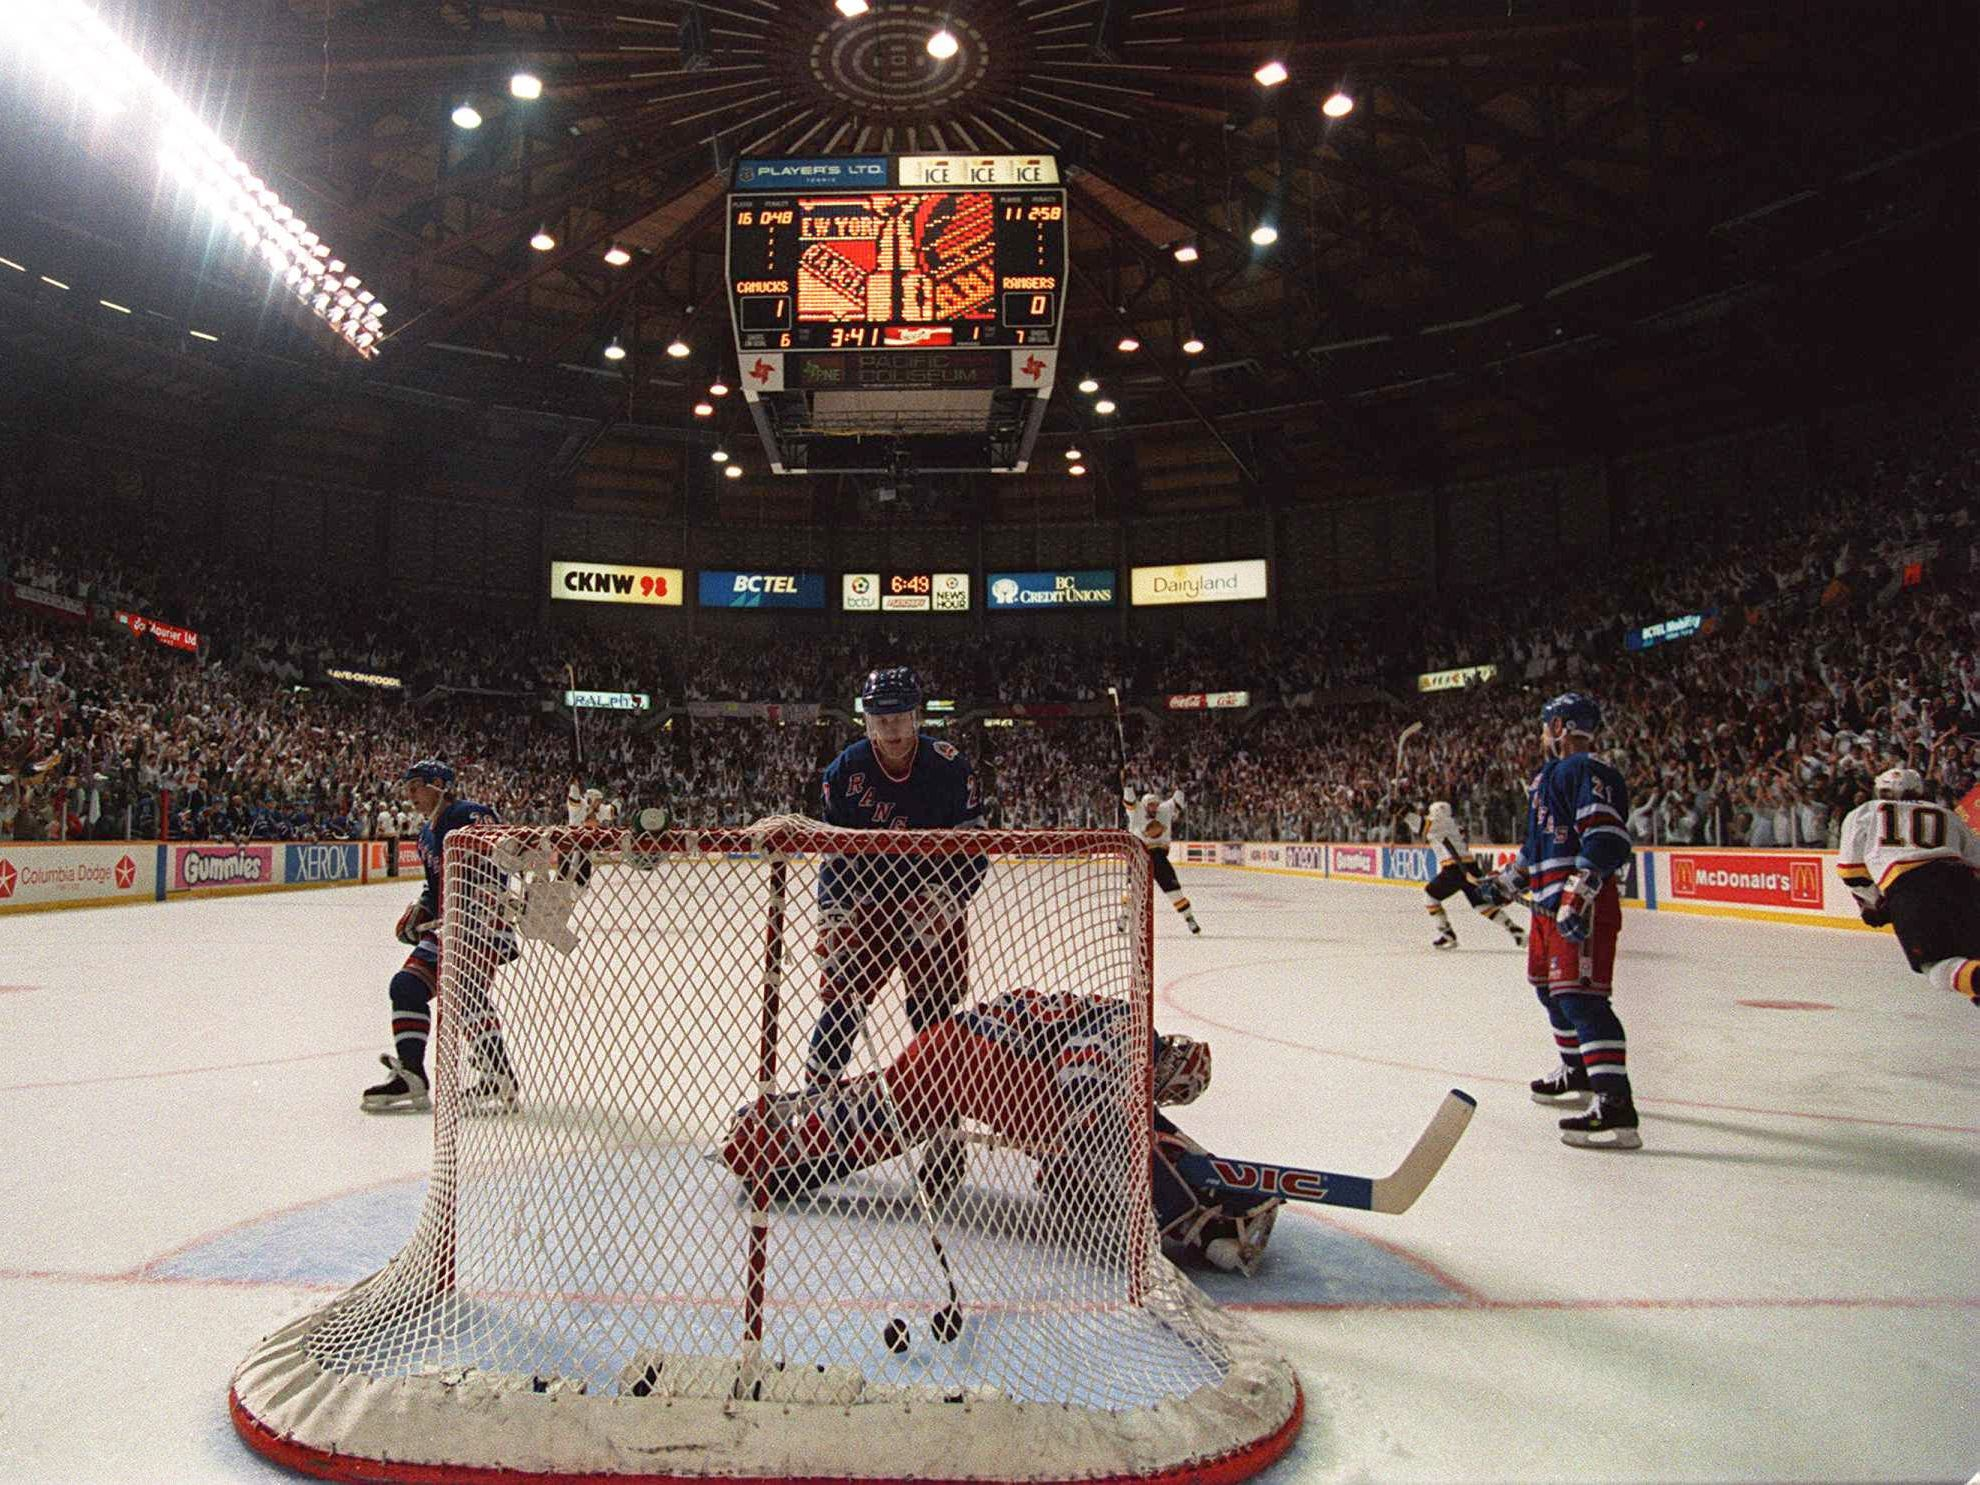 7 Jun 1994: RANGERS DEFENSEMAN BRIAN LEETCH CLEARS THE PUCK FROM THE BACK OF THE NET AS THE CANUCKS CELEBRATE AFTER CLIFF RONNING''S FIRST PERIOD GOAL TONIGHT OF GAME FOUR OF THE STANLEY CUP FINALS AT THE PACIFIC COLISEUM IN VANCOUVER, BRITISH COLUMBIA.